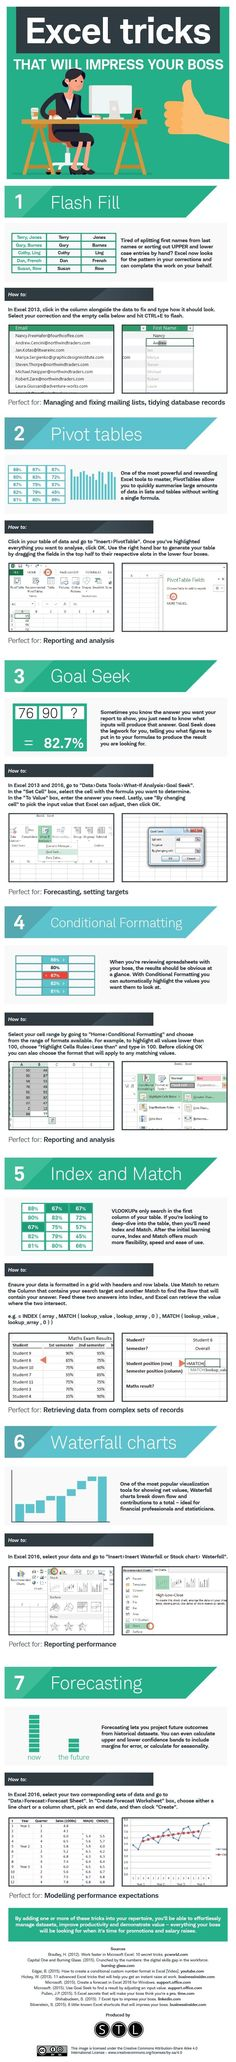 7 Handy Excel Tricks That'll Impress Your Boss [Infographic]